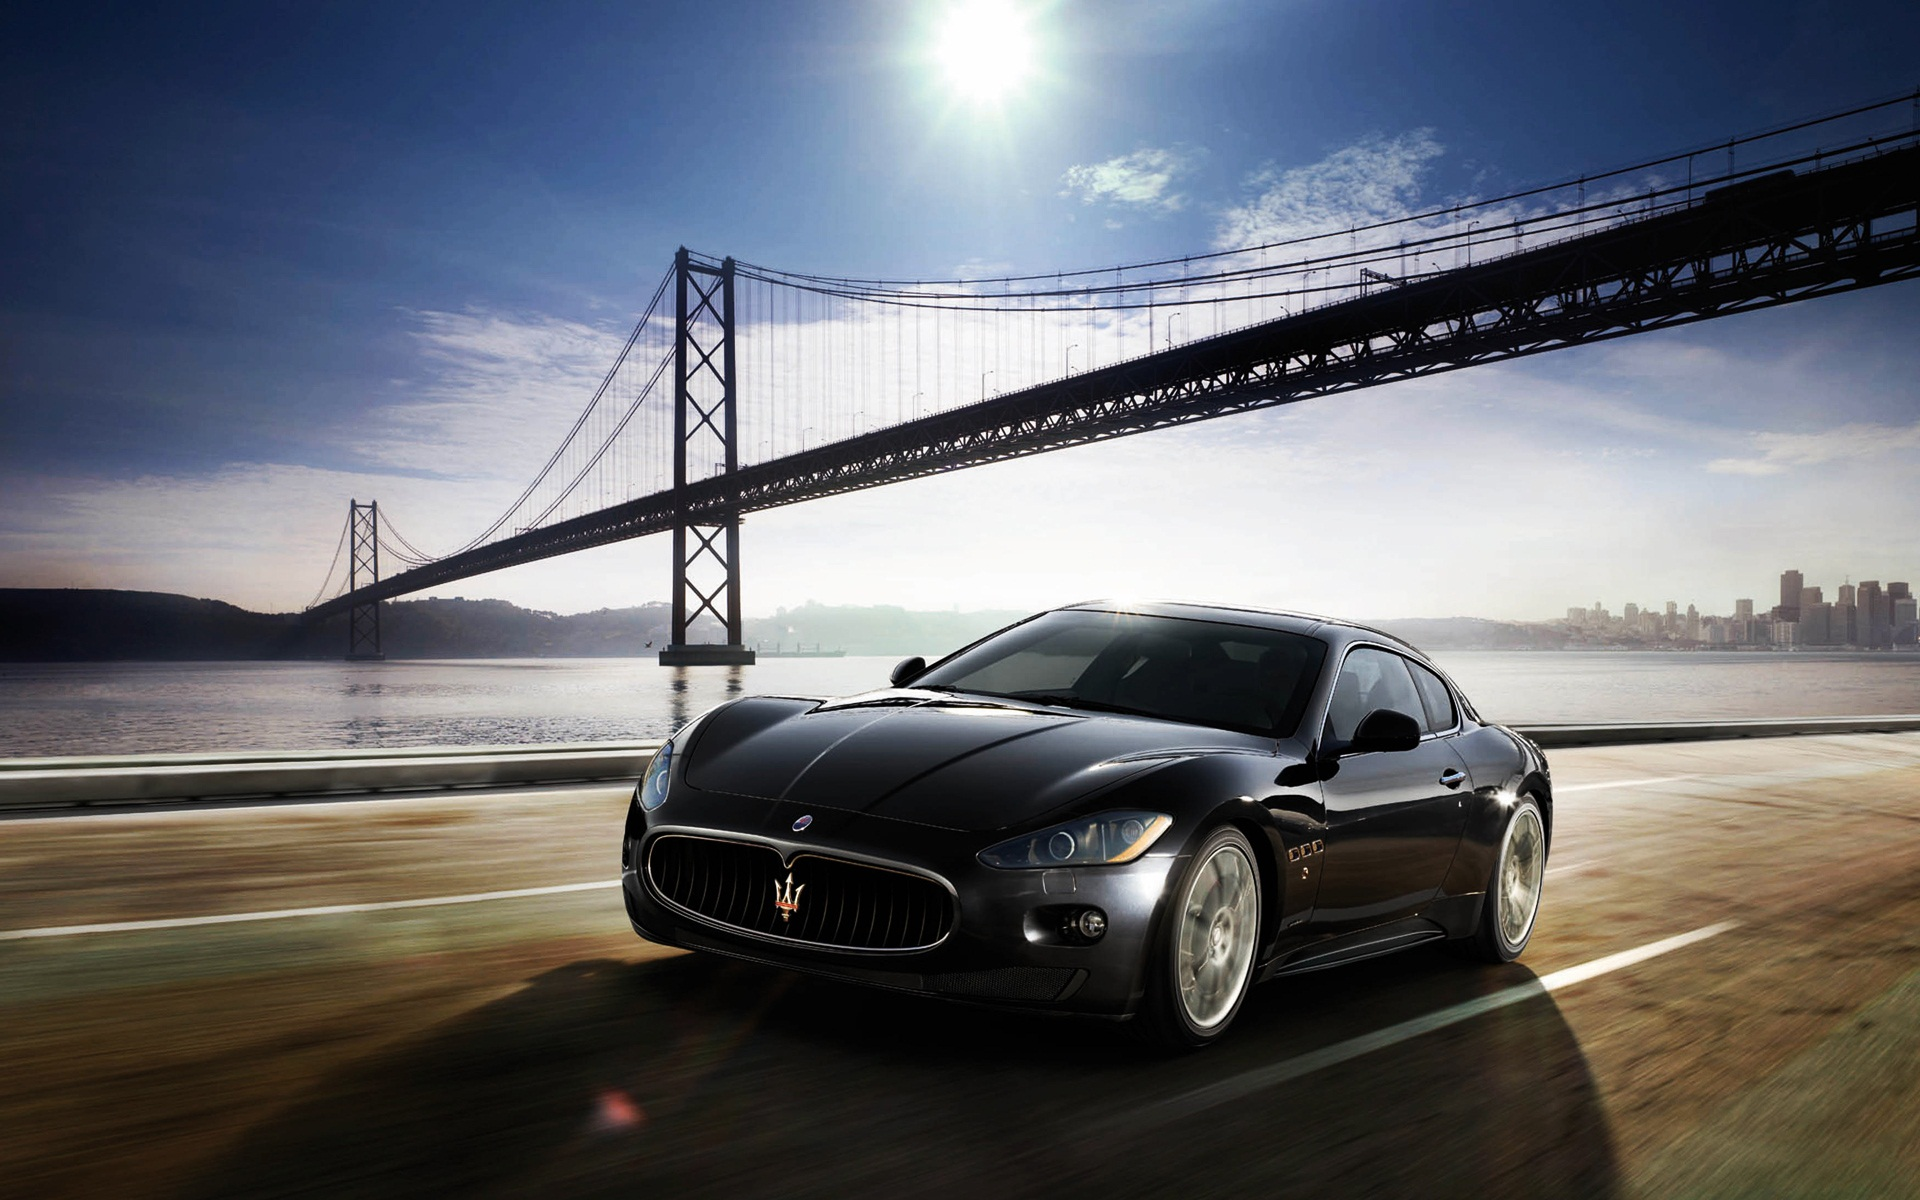 Maserati GranTurismo Wallpapers HD Wallpapers 1920x1200